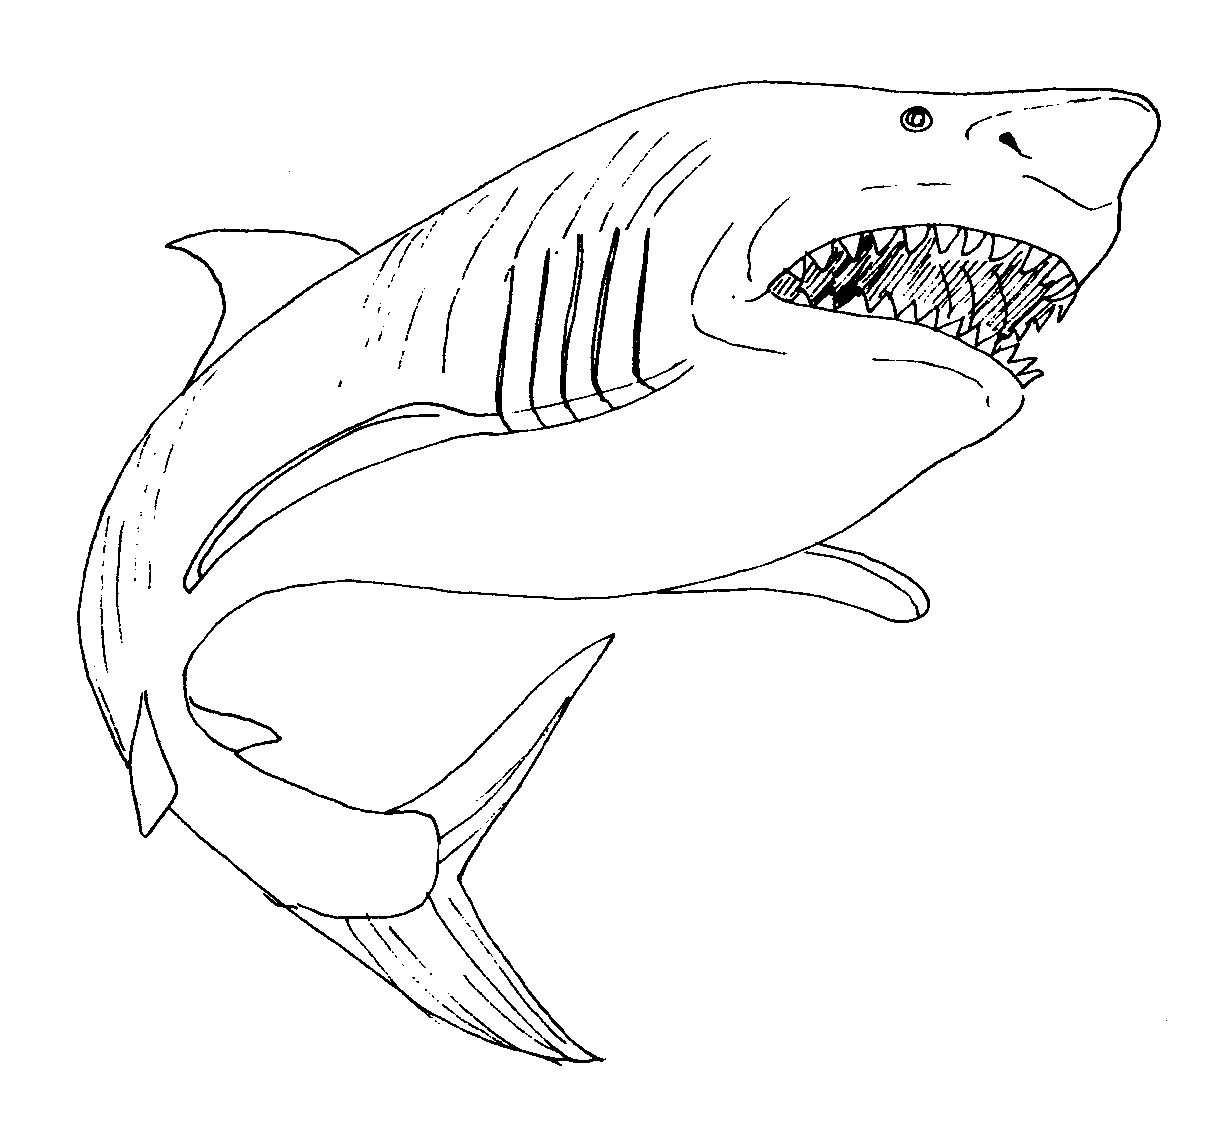 shark coloring pictures shark coloring pages pictures shark coloring 1 1